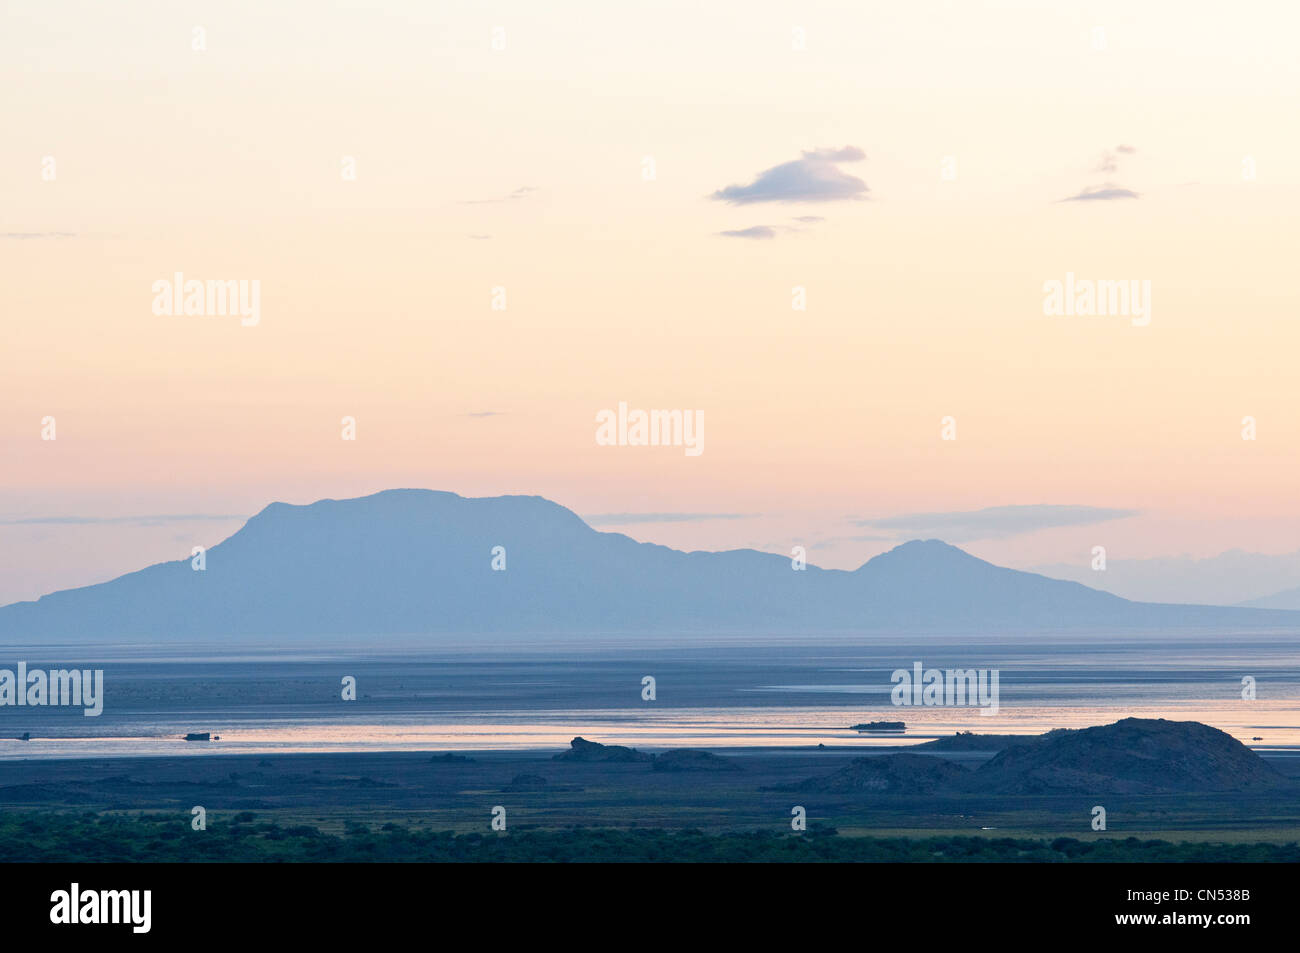 Tanzania, Arusha Region, Rift Valley, the lake Natron at sunrise Stock Photo